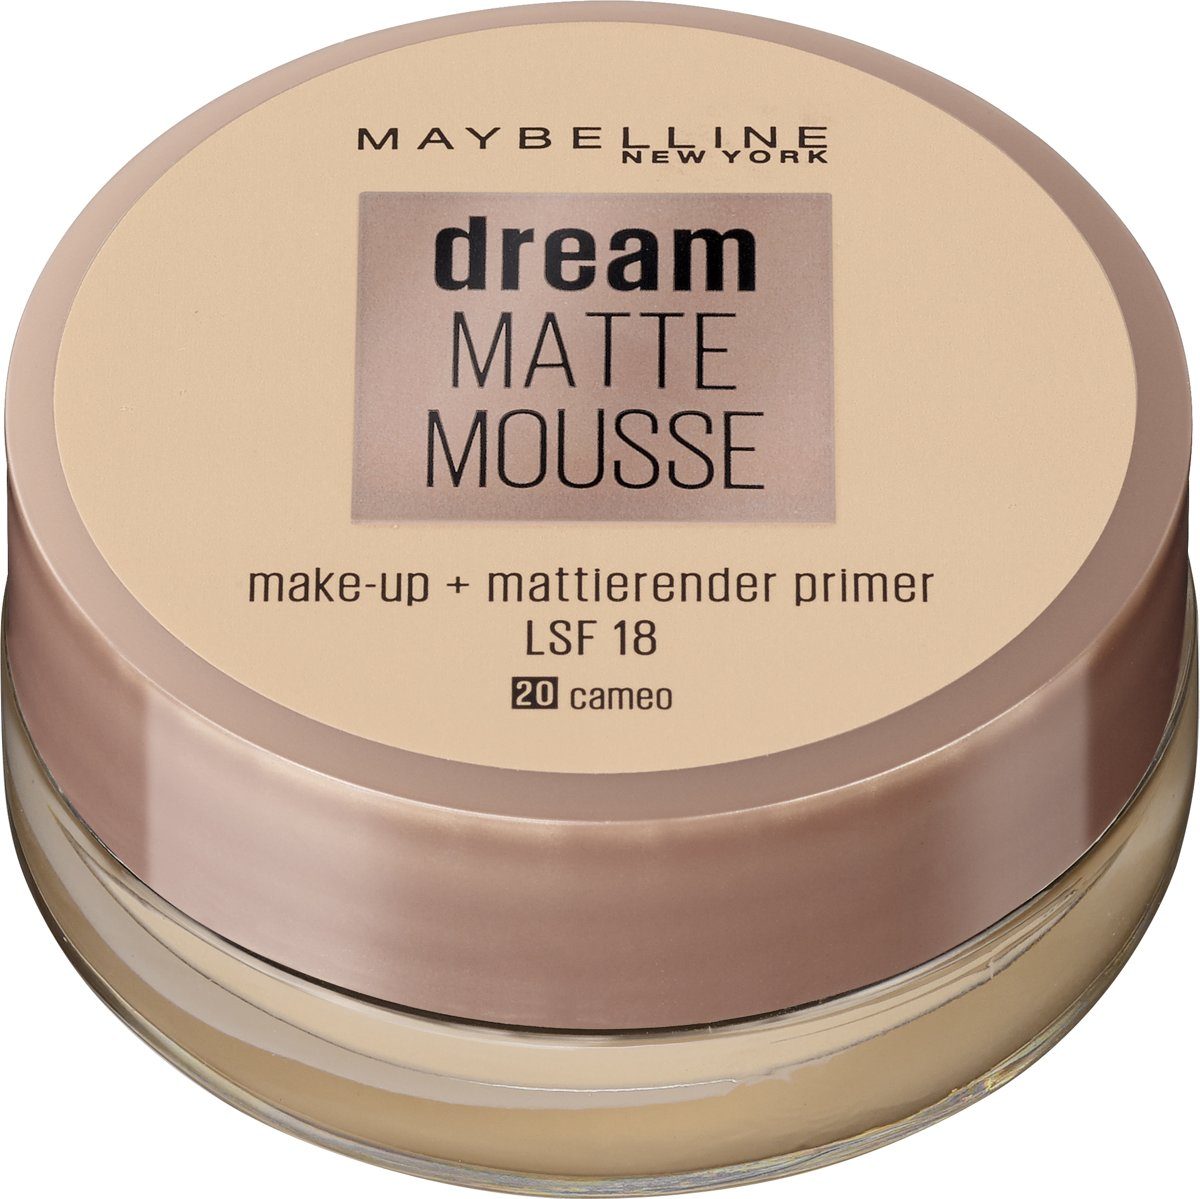 Maybelline Dream Matte Mousse - 020 Cameo - Foundation